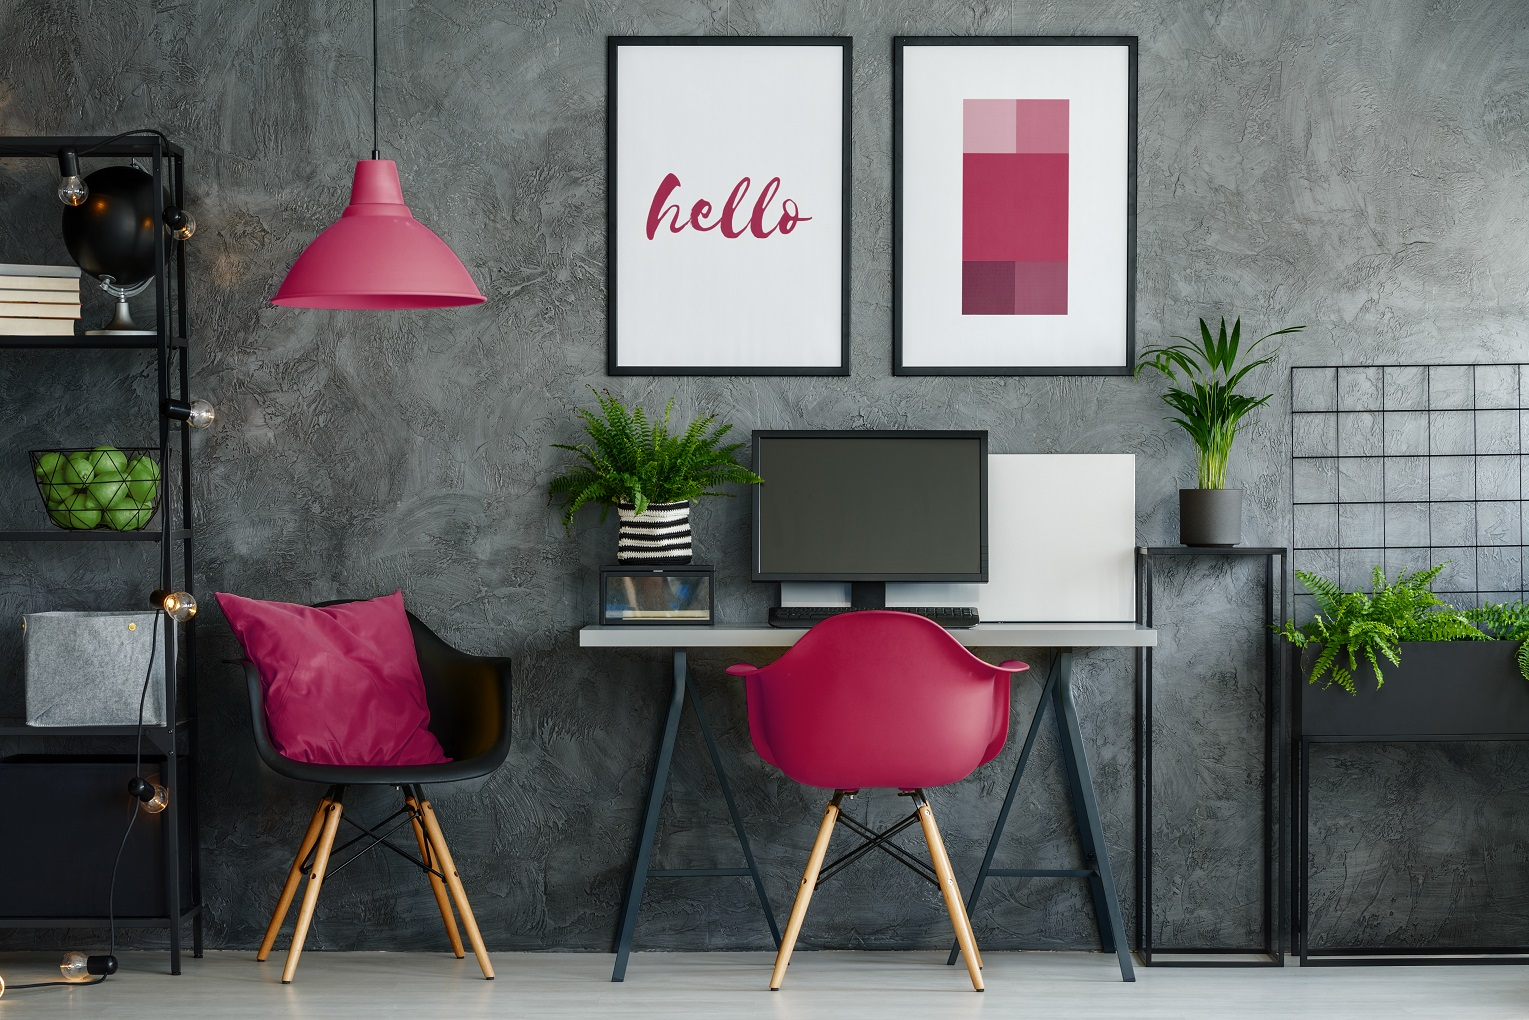 luxury home office ideas team logue Cherry pink chair at desk with desktop in dark home office with posters on concrete wall